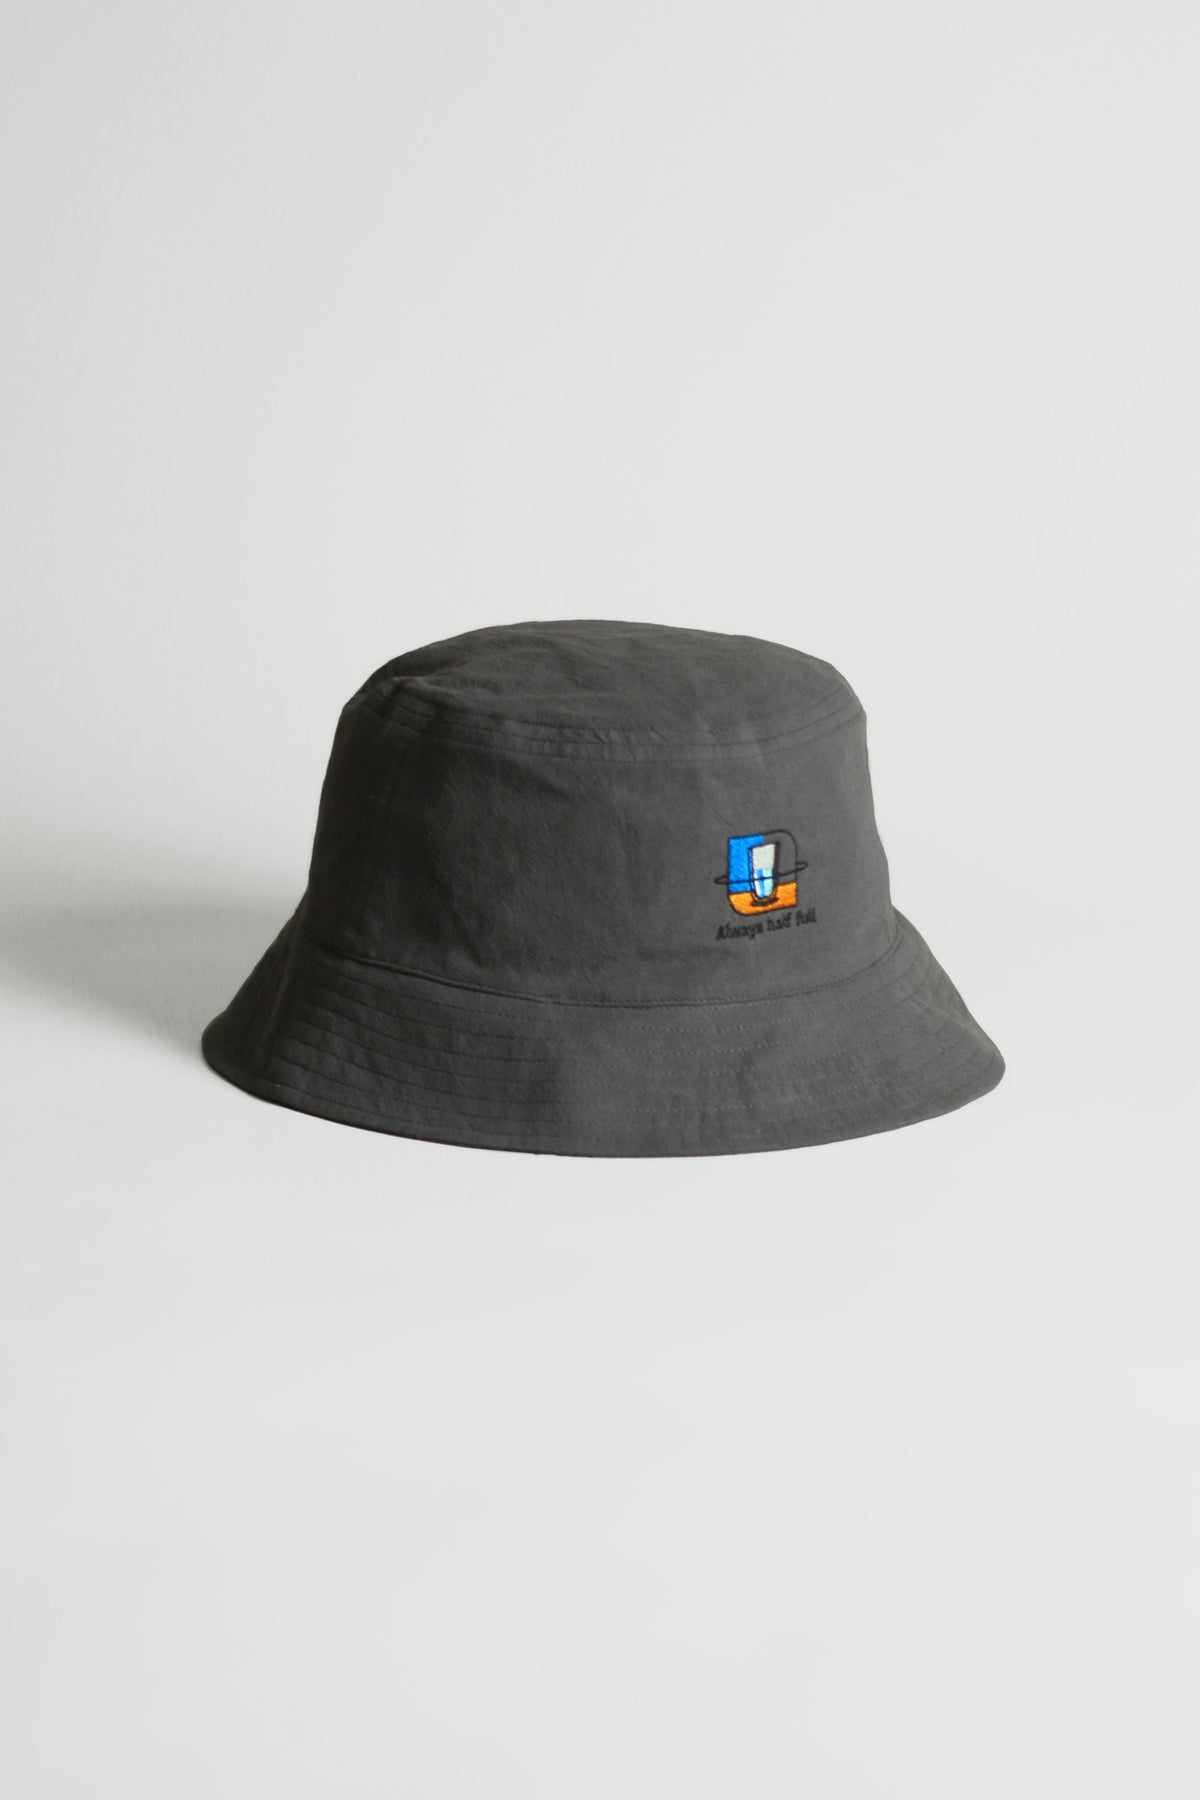 "Graphic Embroidery Tee - ""Always Half Full"" Bucket Hat"